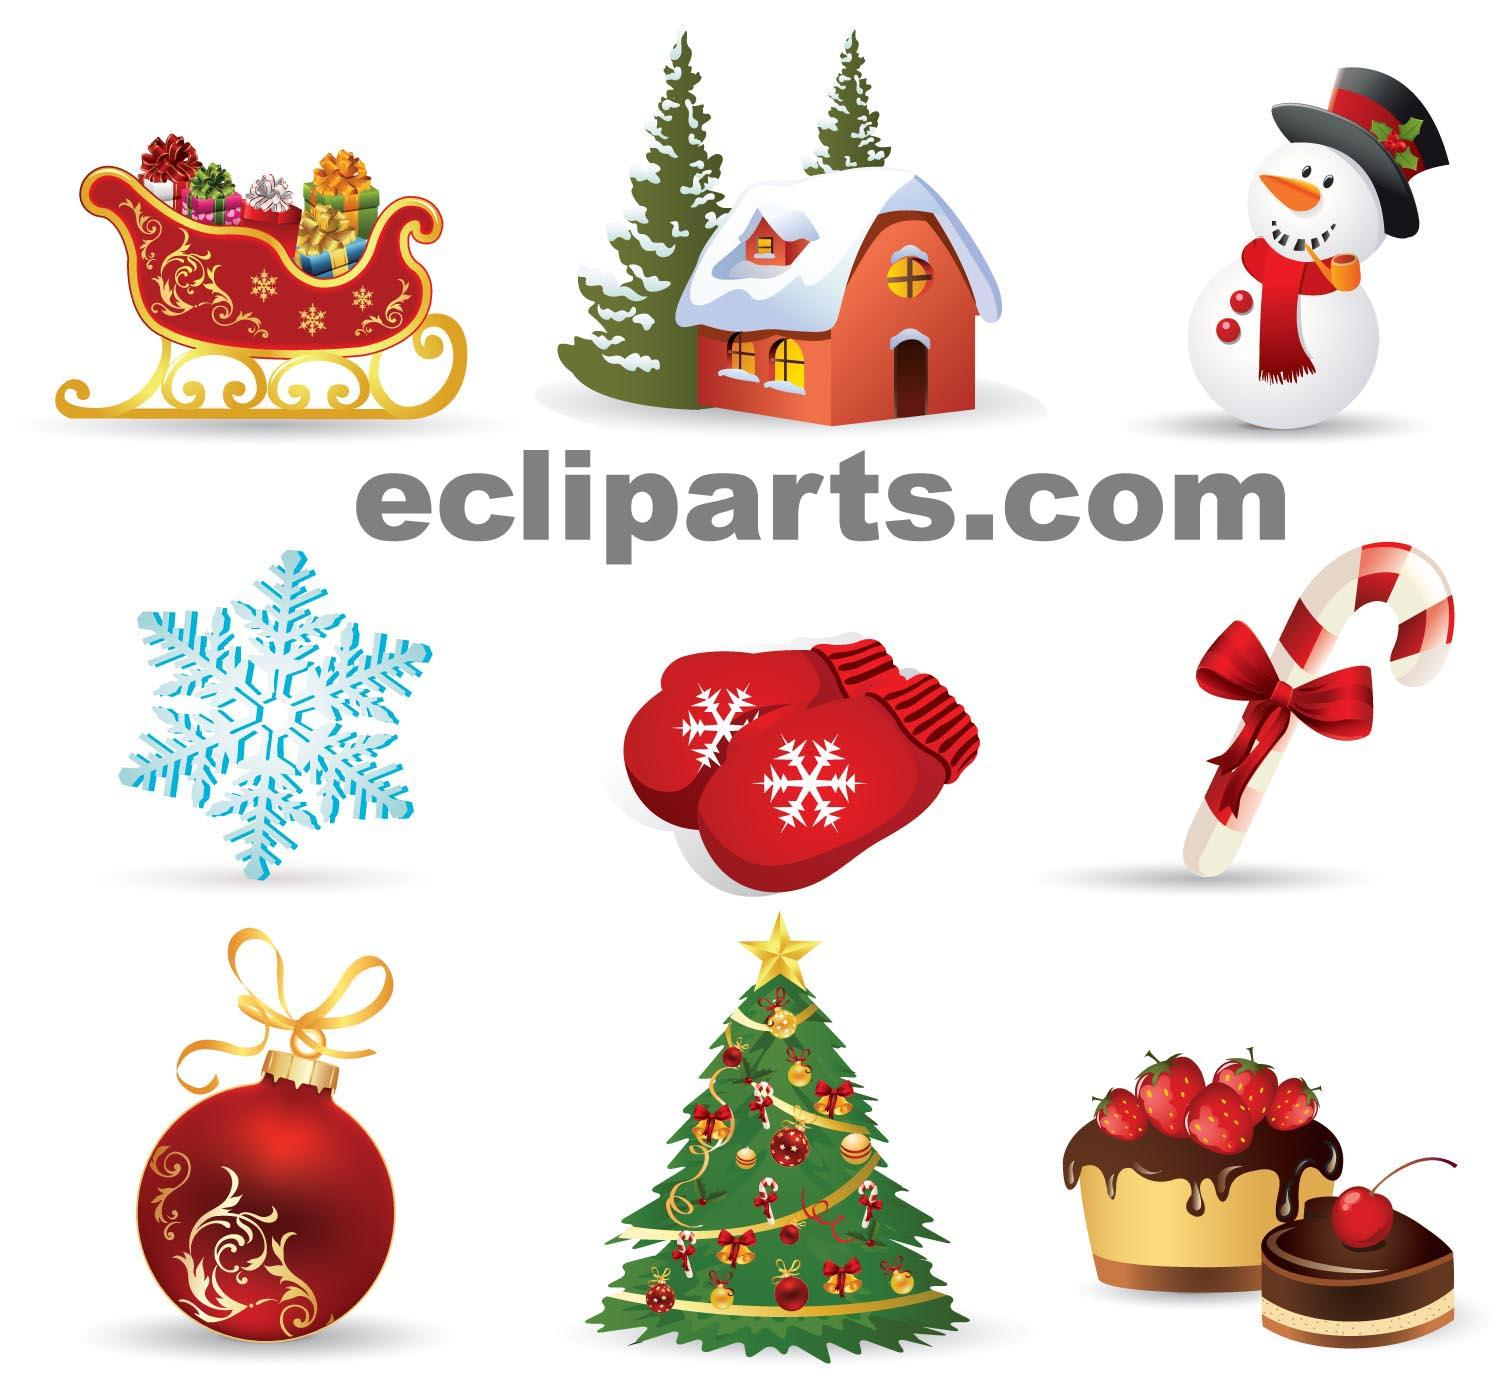 Clip art online free free christmas clipart christmas free clip arts